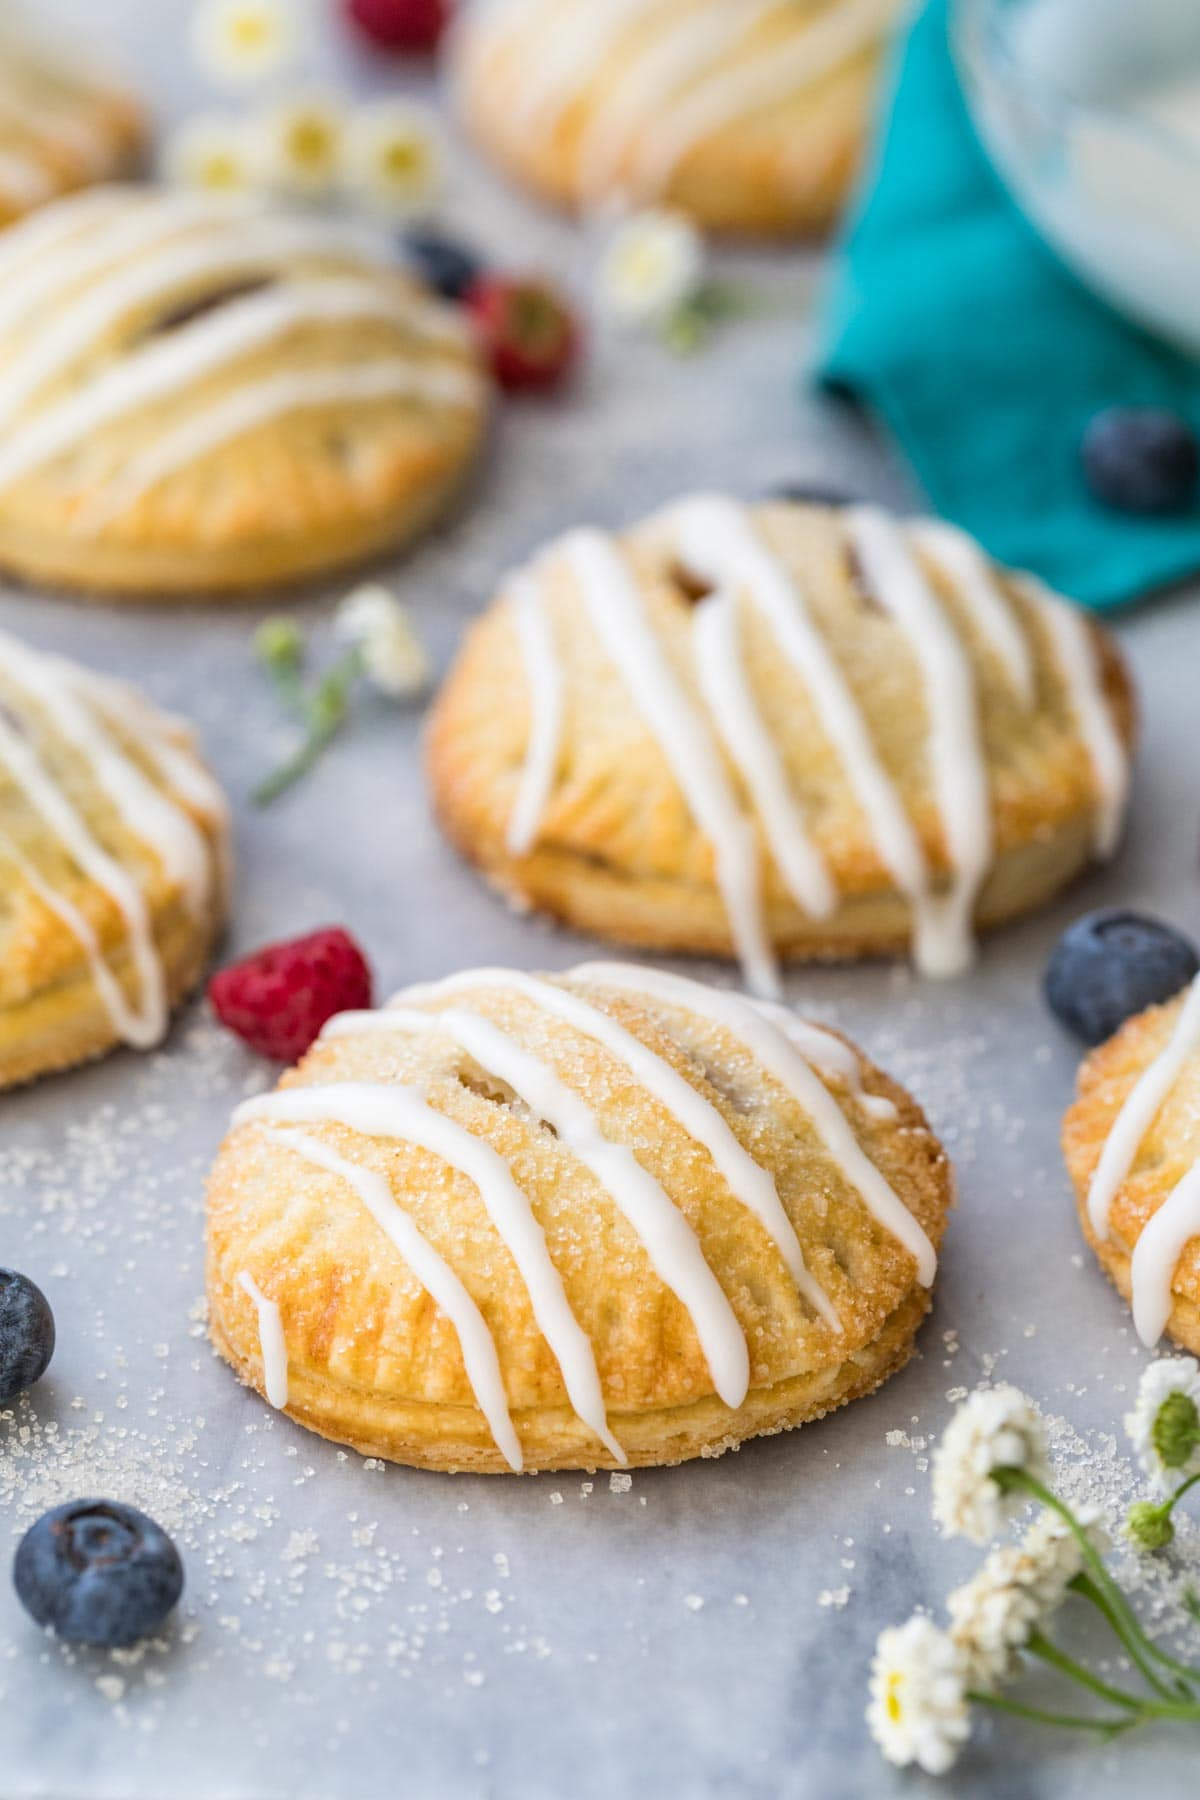 fruit-filled hand pies with vanilla glaze drizzle on marble